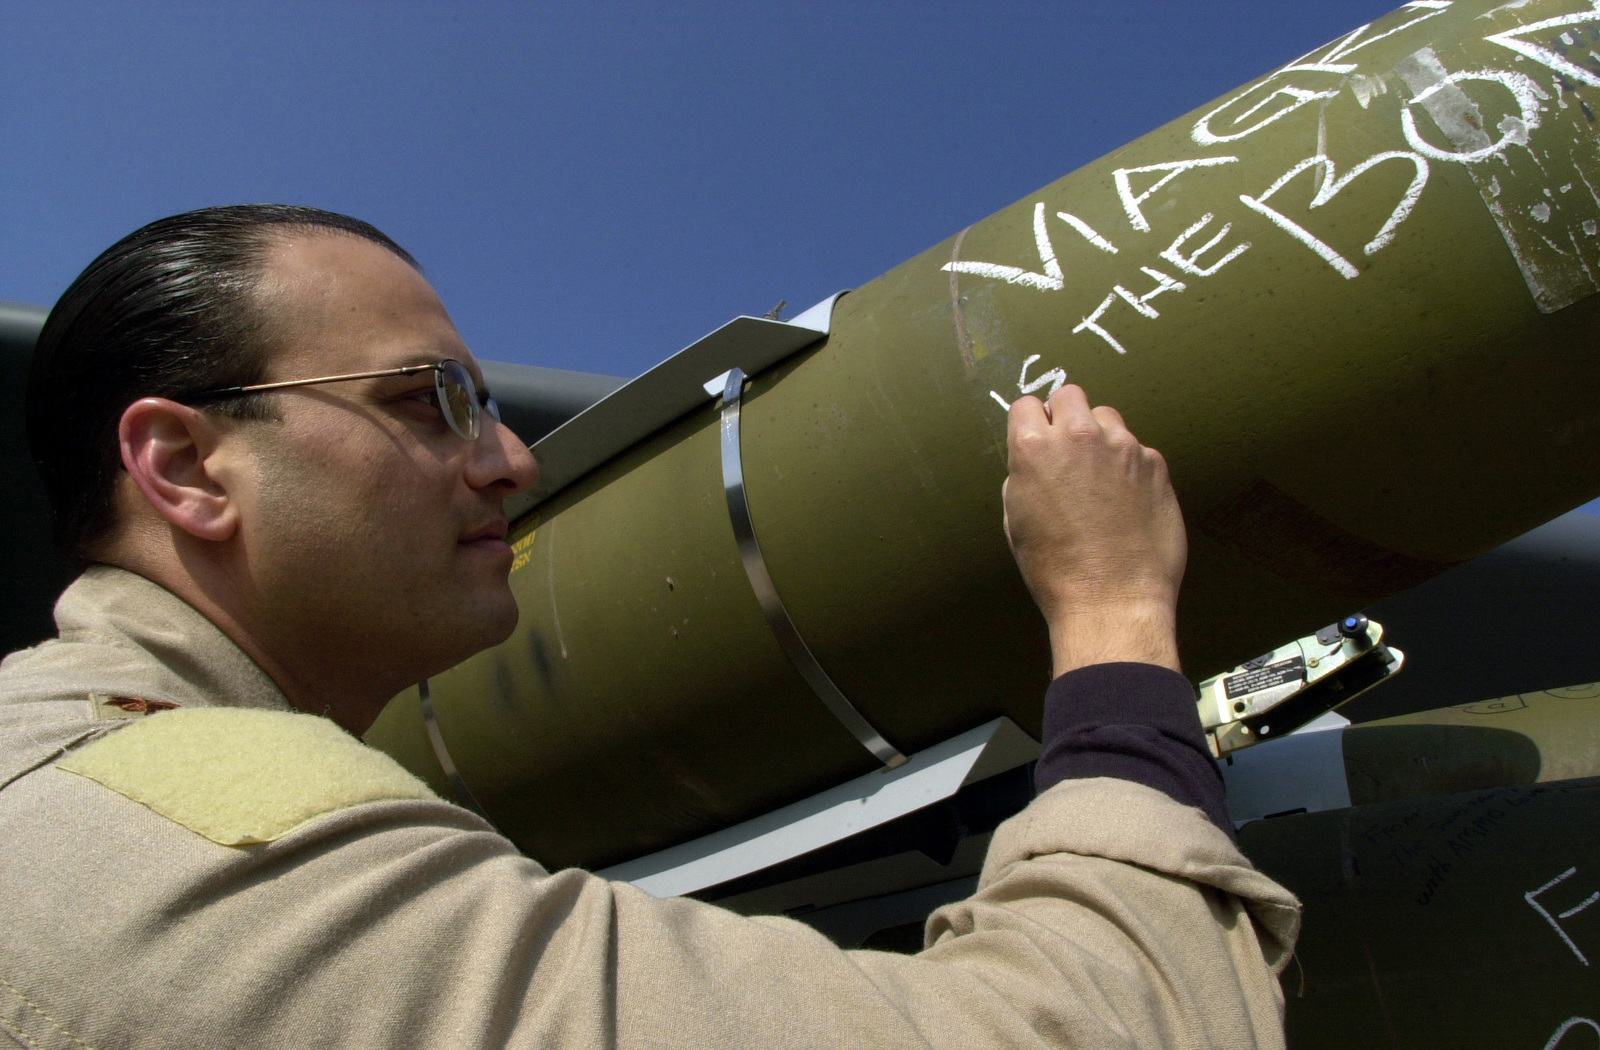 US Air Force (USAF) Major (MAJ) Roger, Radar Navigator, 23rd Expeditionary Bomb Squadron (EBS), Minot Air Force Base (AFB), North Dakota (ND), jots a final message on a JDAM (Joint Direct Attack Munitions) prior to the first ever B-52H Stratofortress bomber sortie with a configuration of Air-Launched Cruise Missile (ALCM) and JDAMs for military targets in Iraq during Operation IRAQI FREEDOM